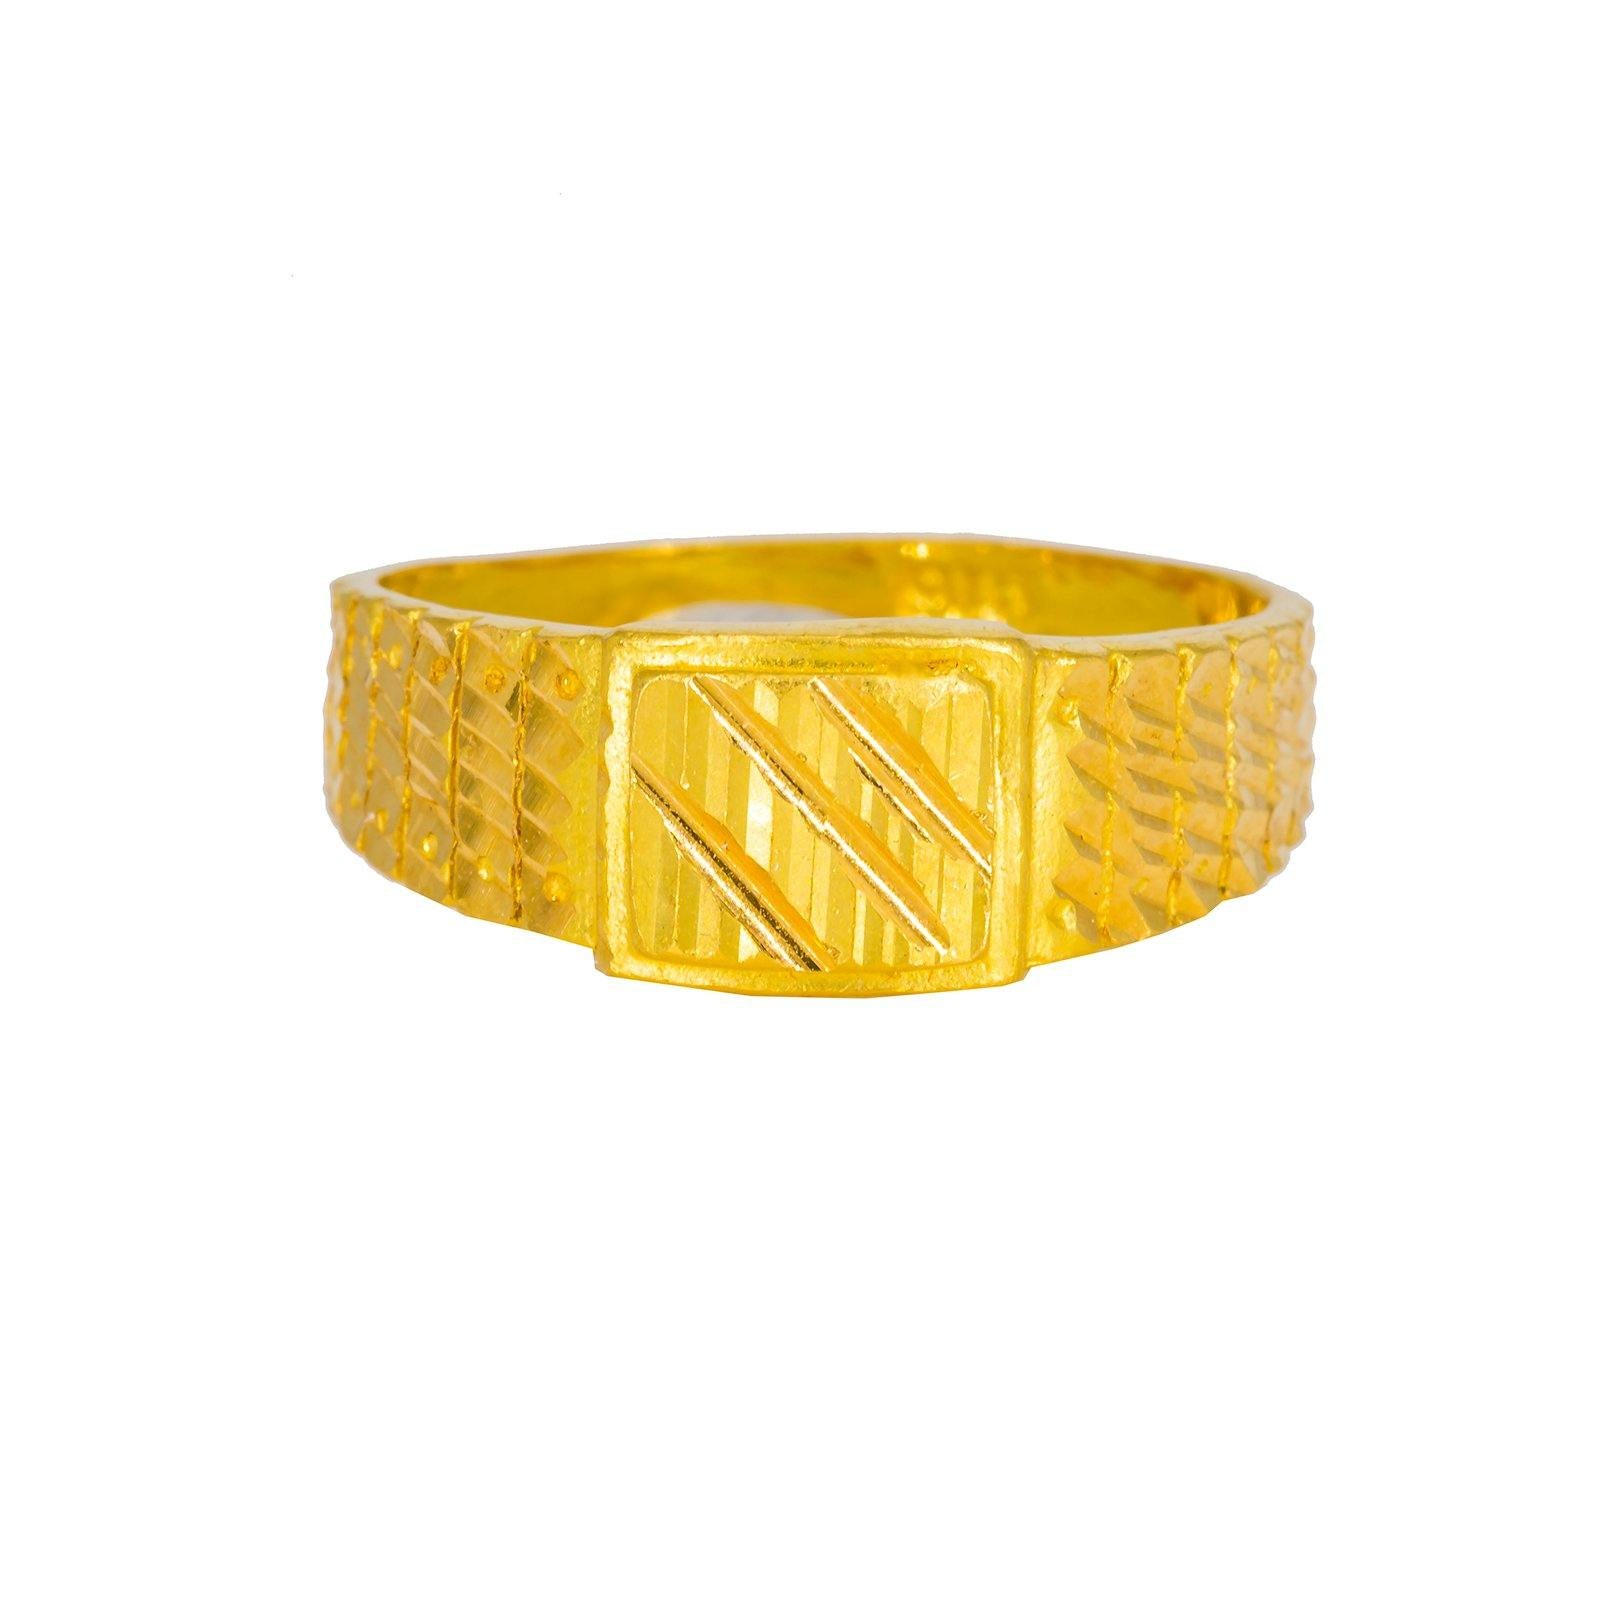 22K Yellow Gold Men's Ring W/ Square Face & Chiseled Accents